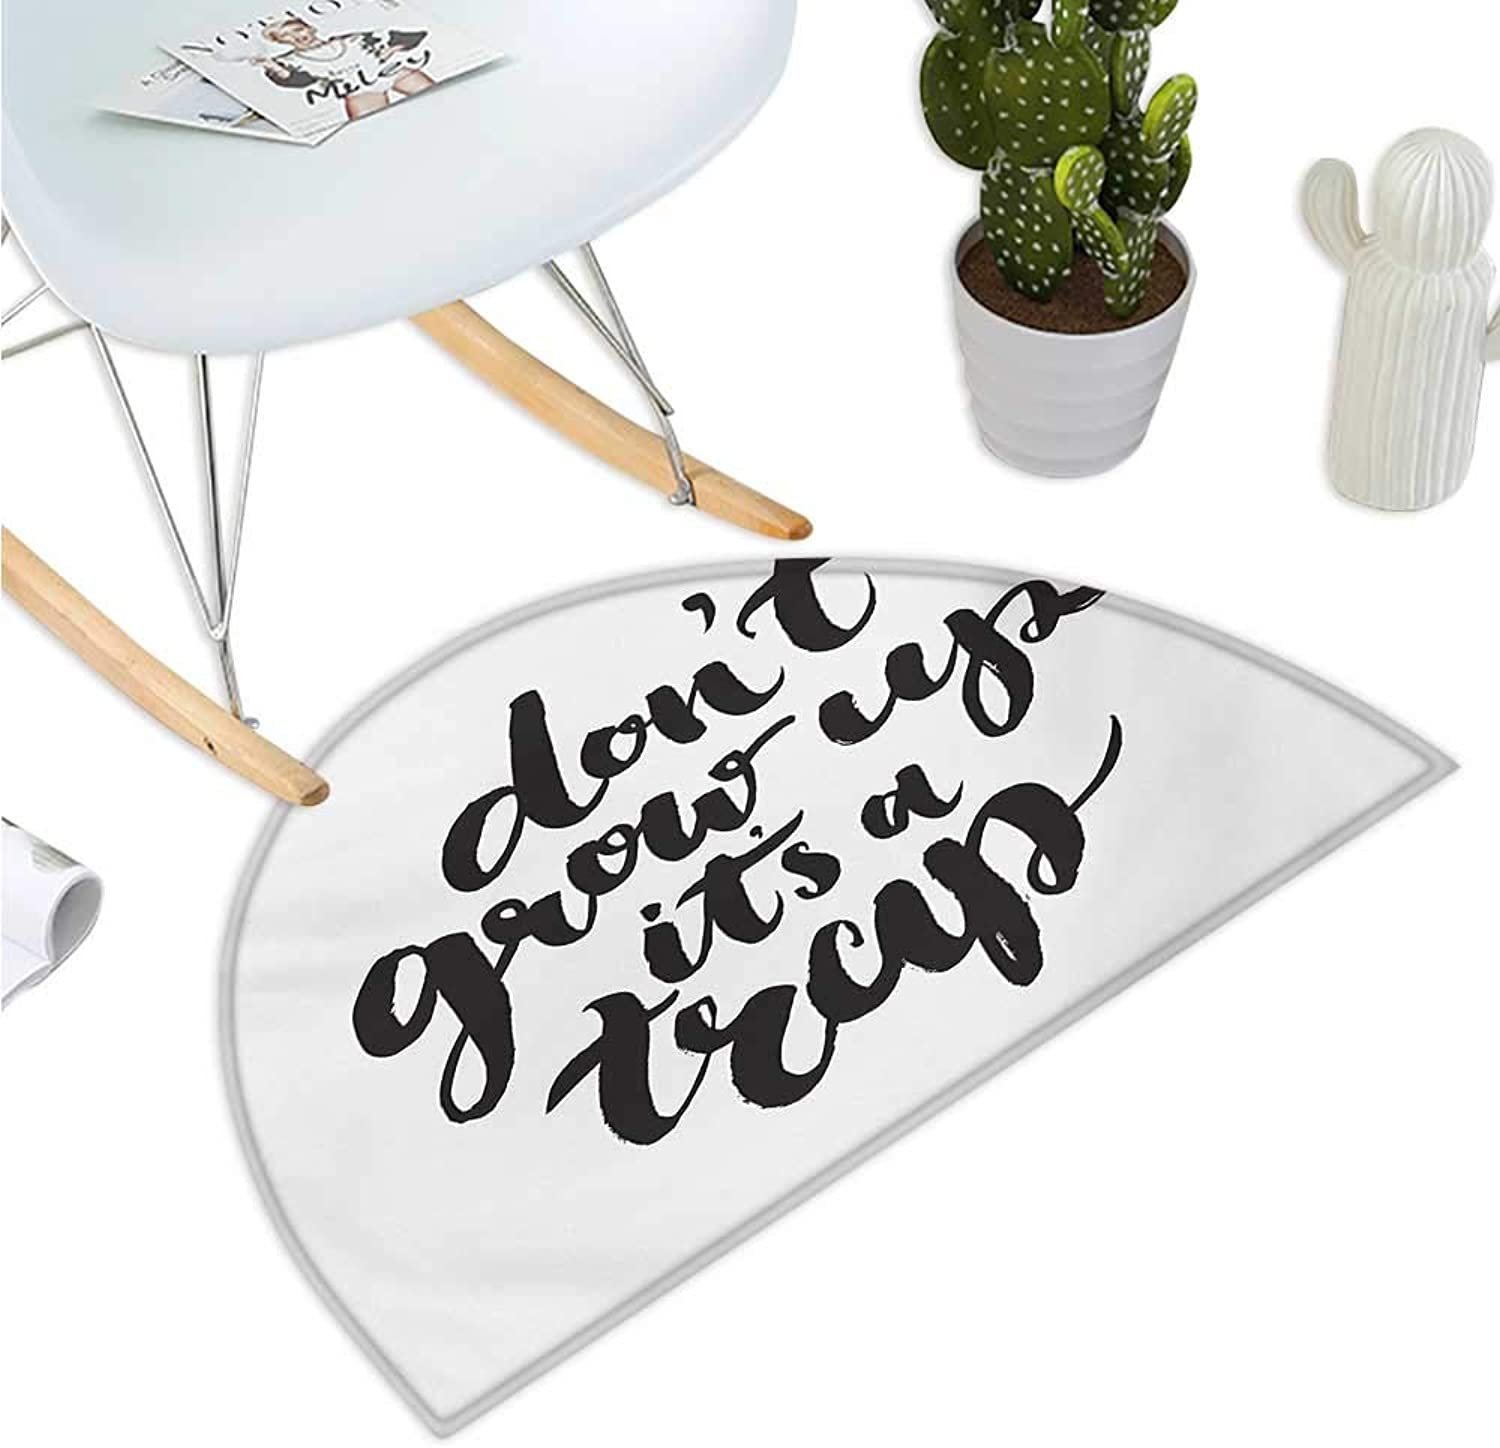 Quote Semicircular Cushion Funny Saying for Kids Do Not Grow Up It is a Trap Hand Written Style Bathroom Mat H 35.4  xD 53.1  Charcoal Grey and White